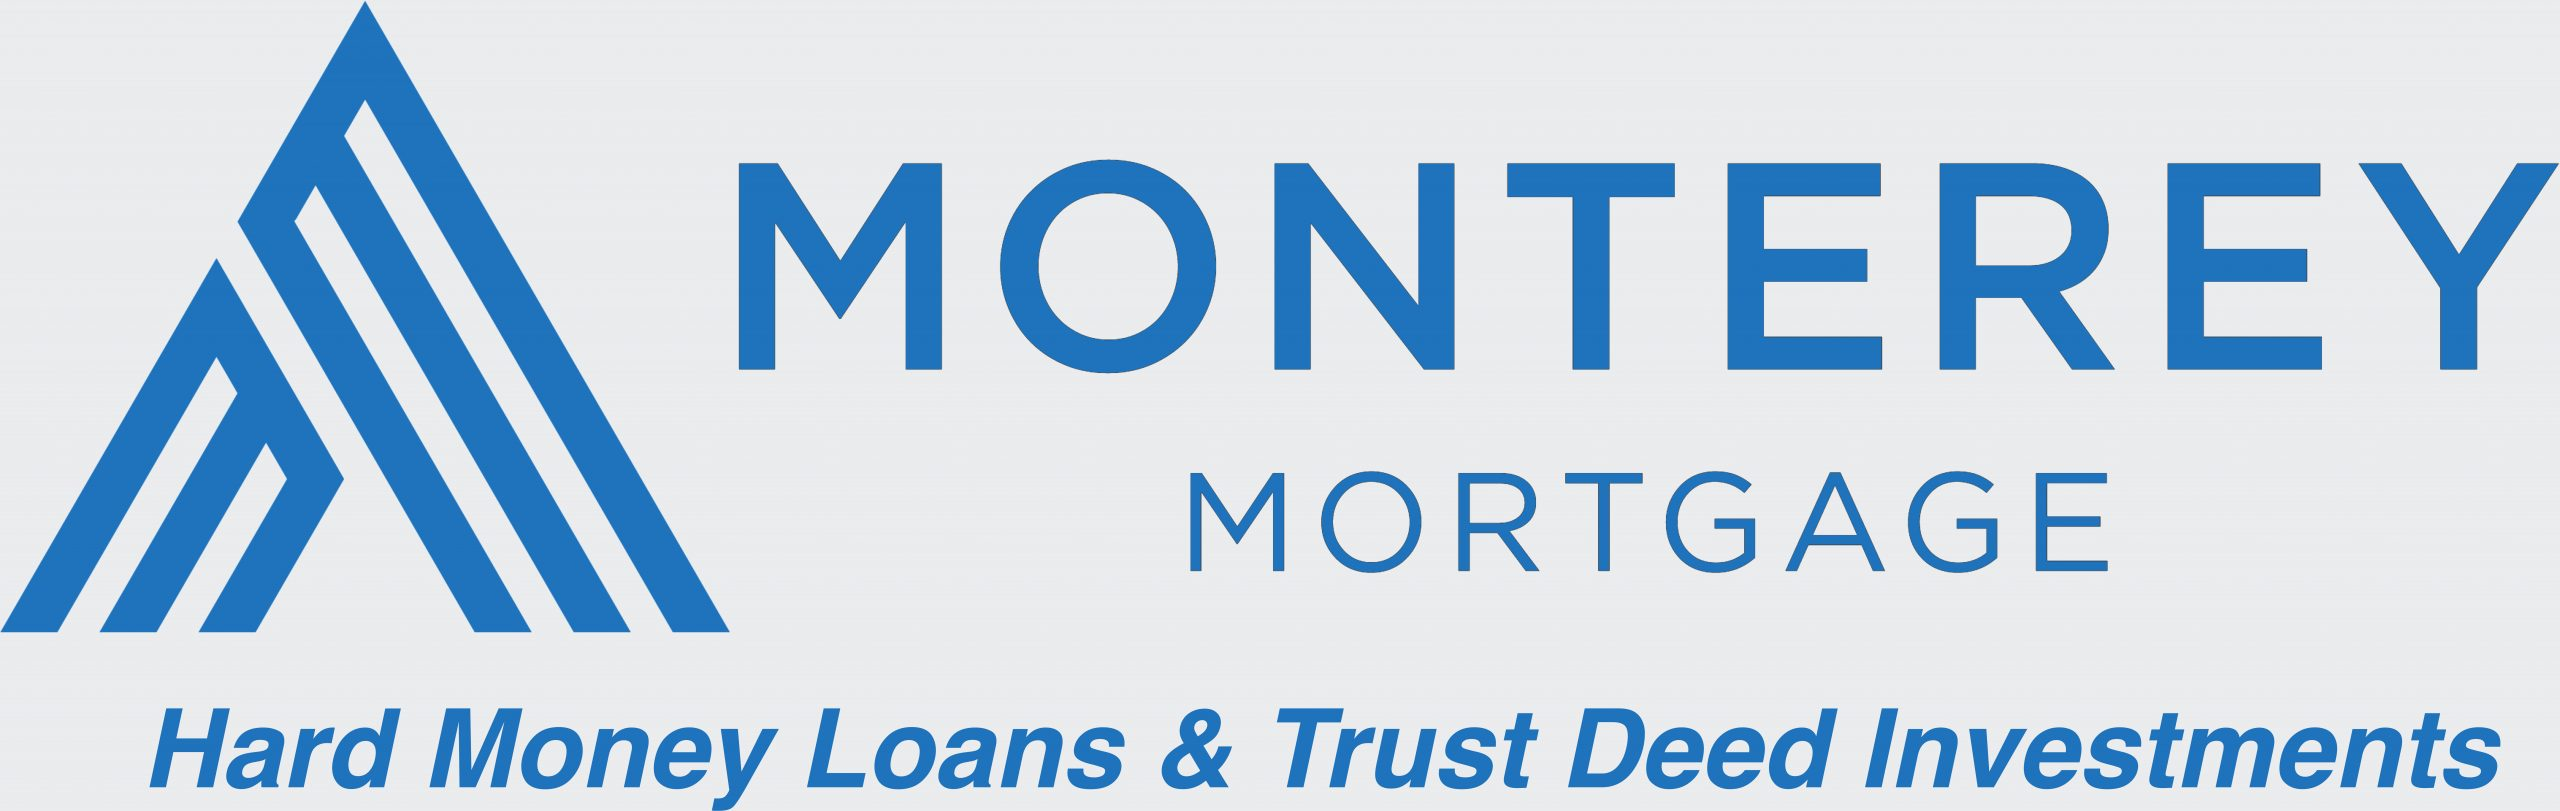 Monterey Mortgage Hard Money Loans & Trust Deed Investments